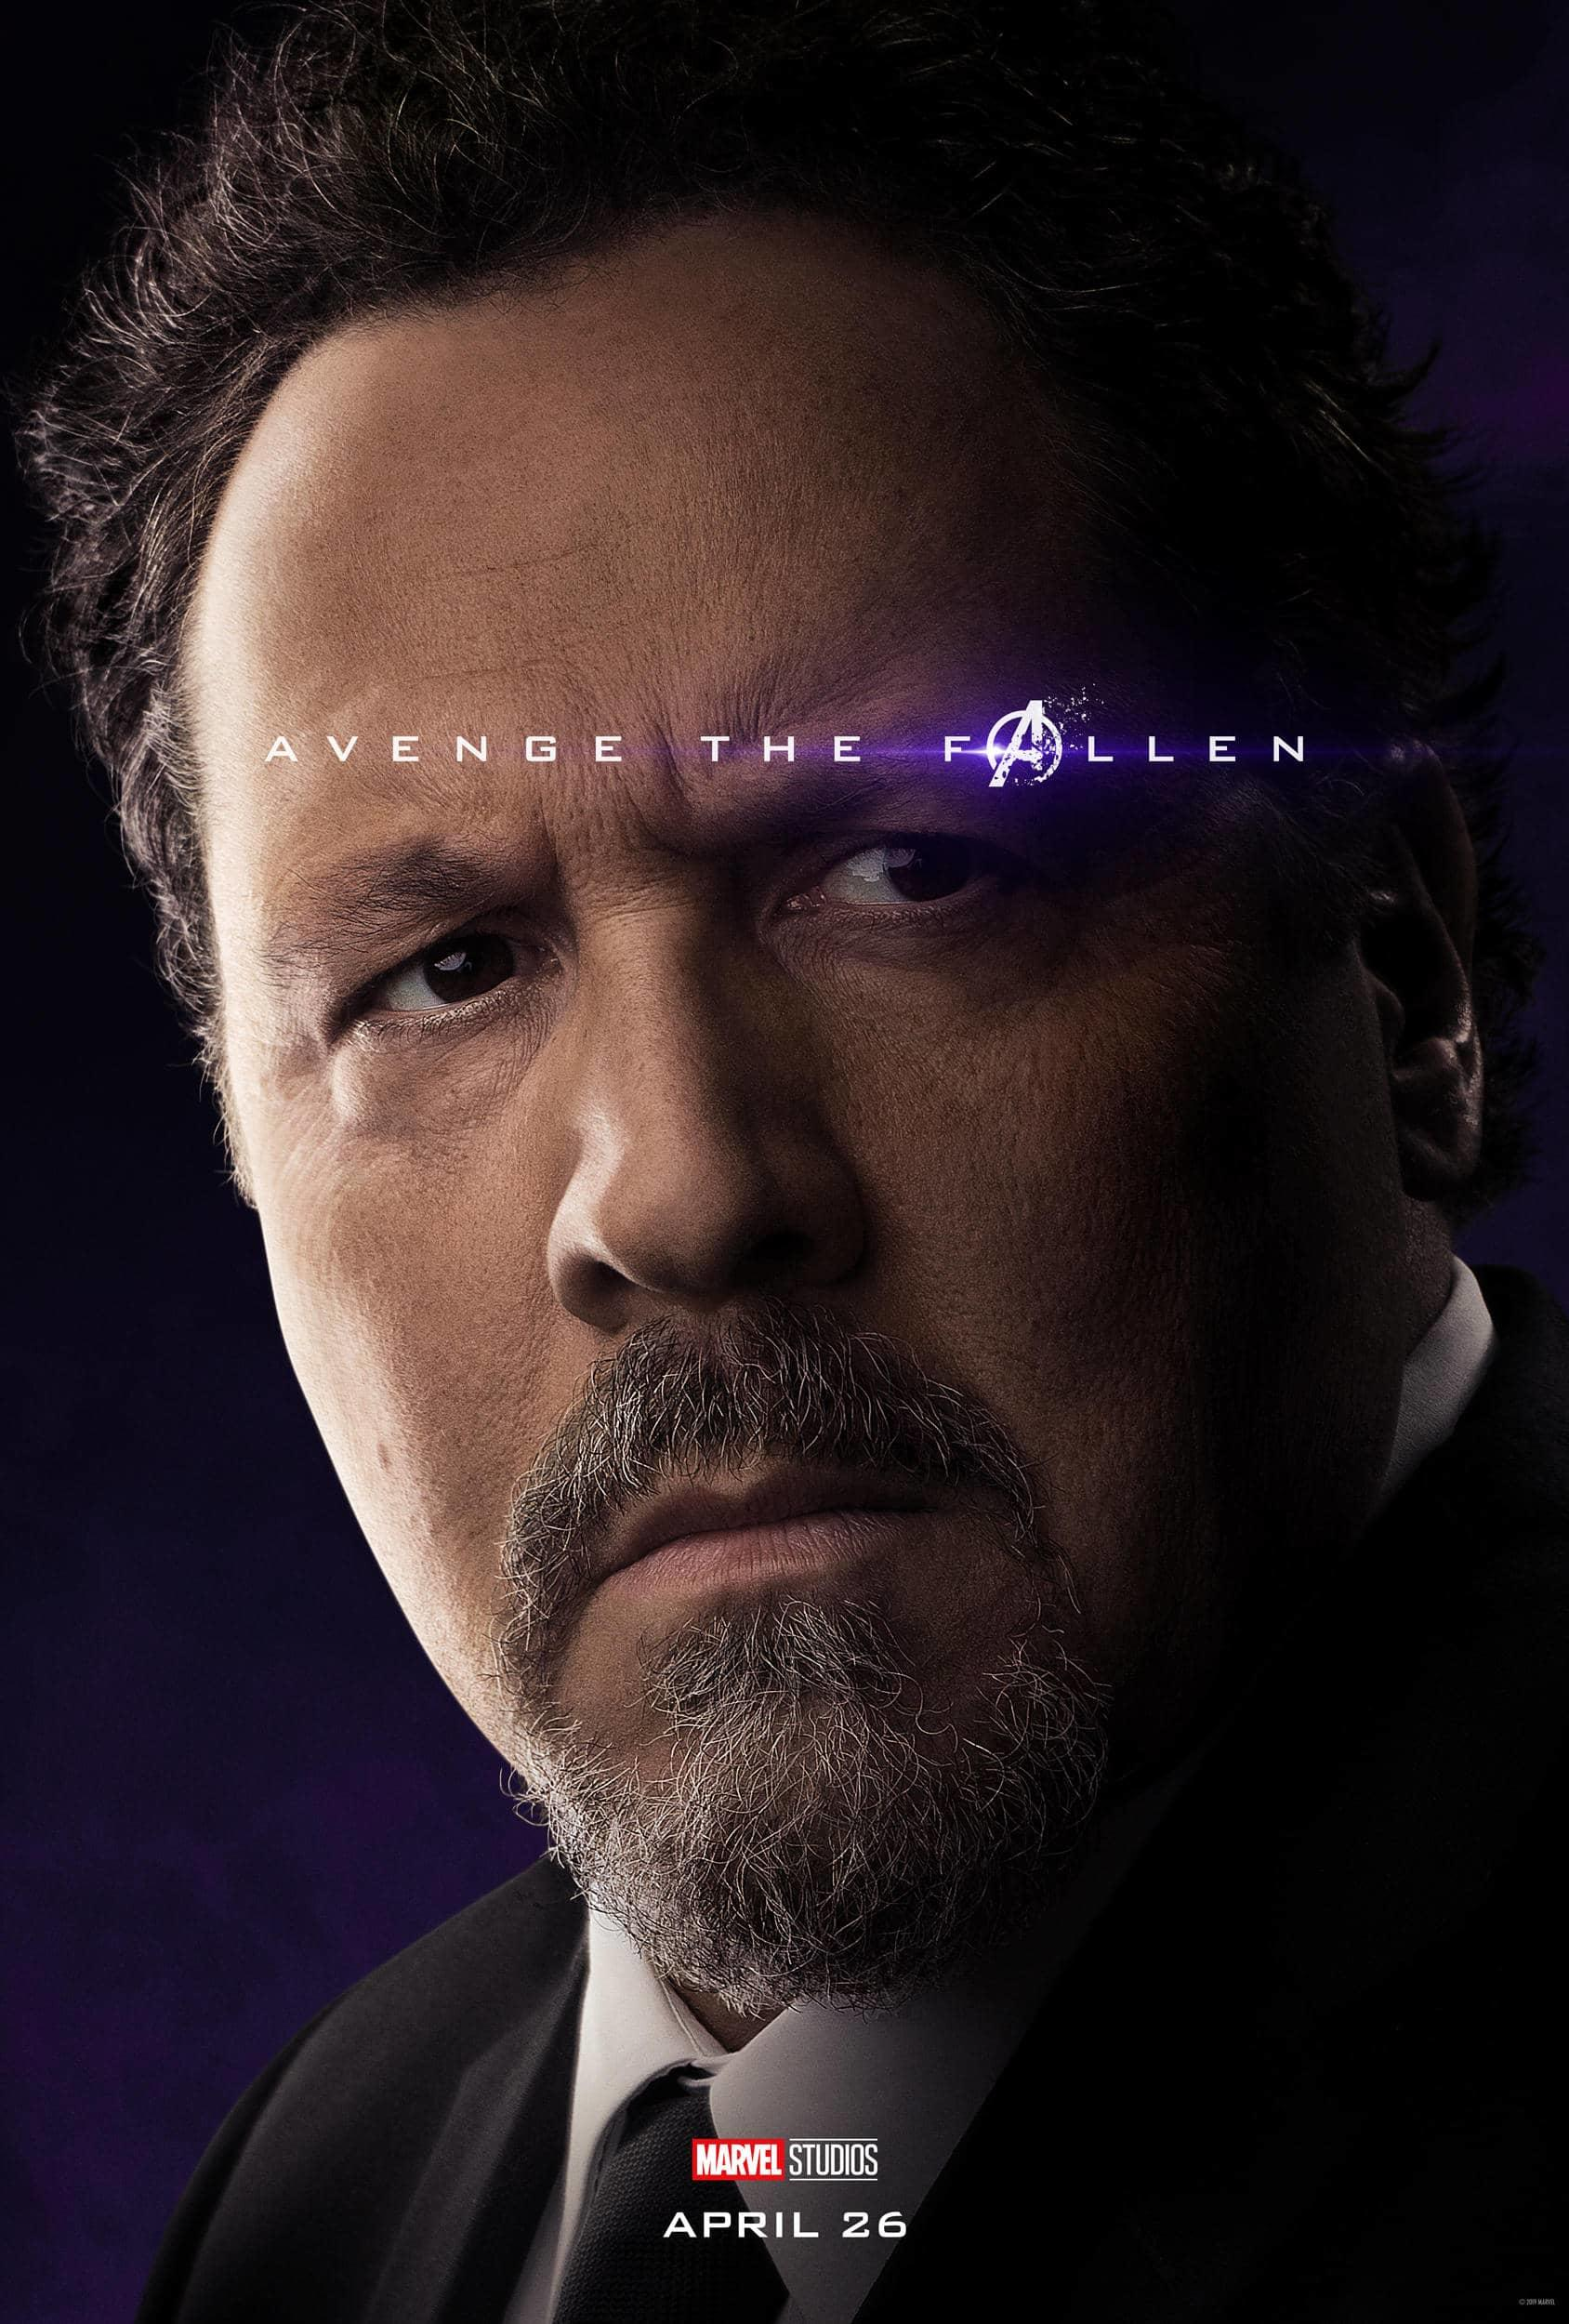 Marvel Studios' Avengers: Endgame Movie Cast Happy Hogan Jon Favreau